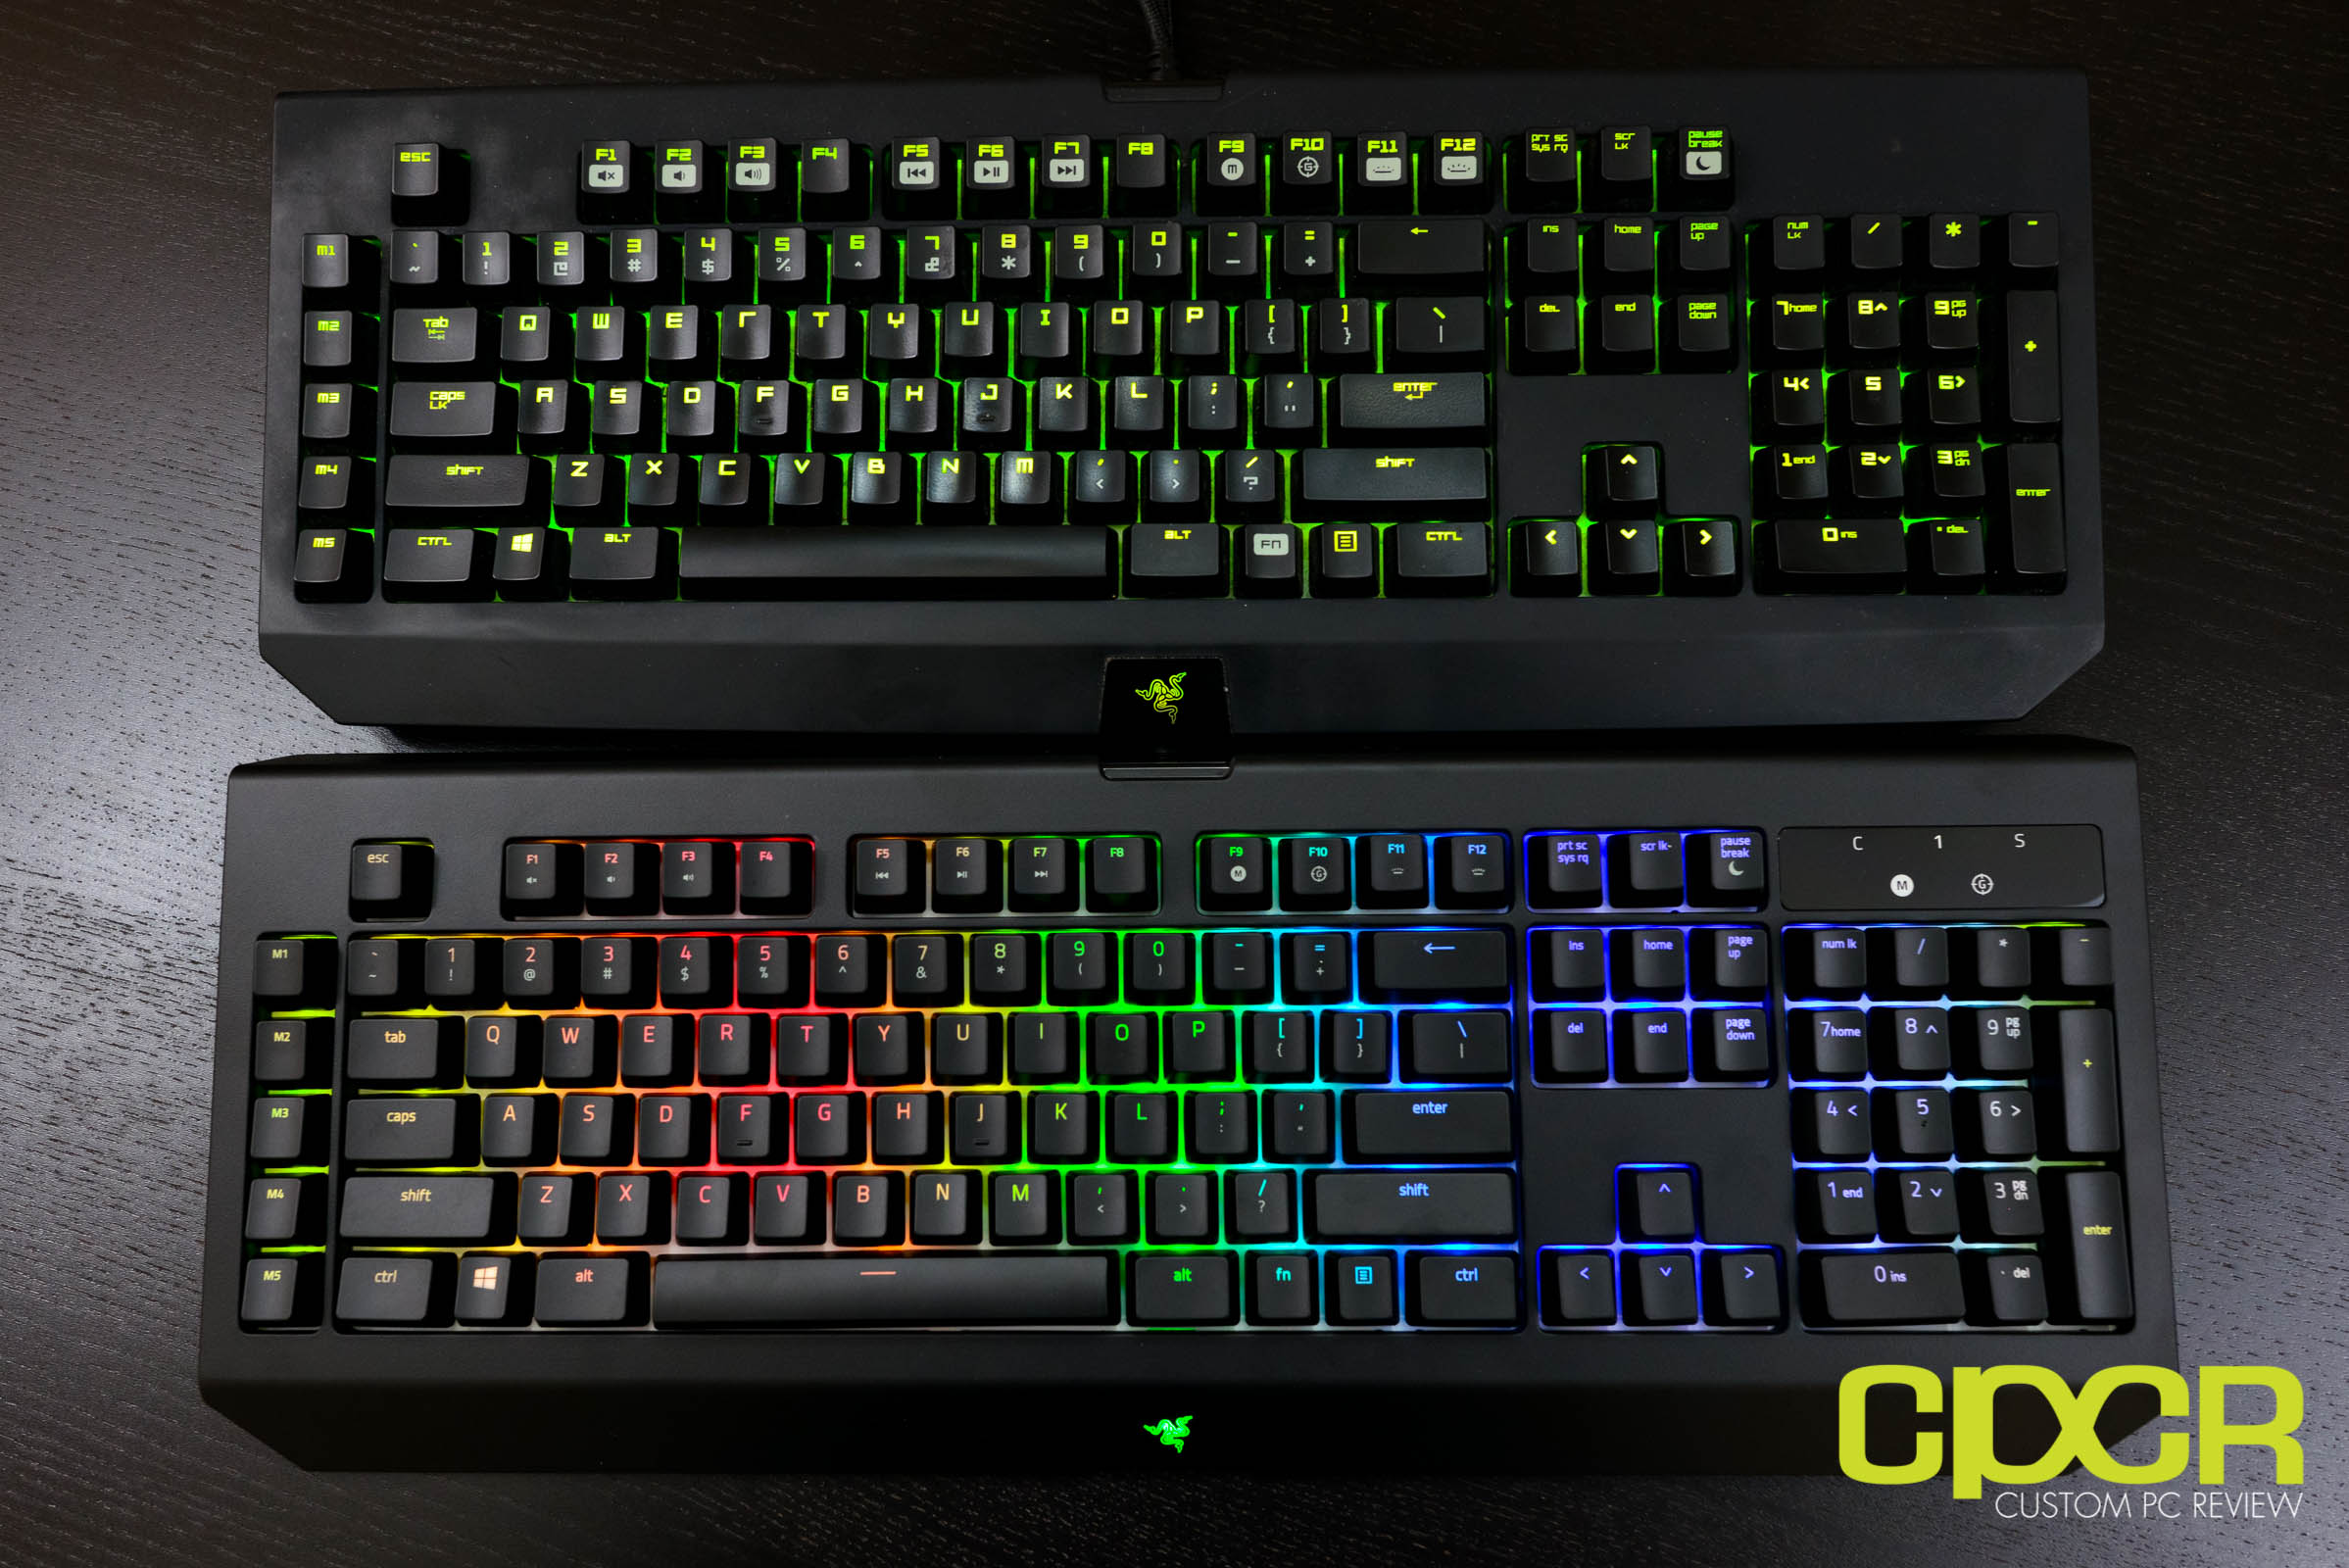 2fd4b22da90 Here's a quick comparison of the new Razer BlackWidow Chroma V2 compared to  its predecessor. The biggest thing you'll notice is the material used on  the ...